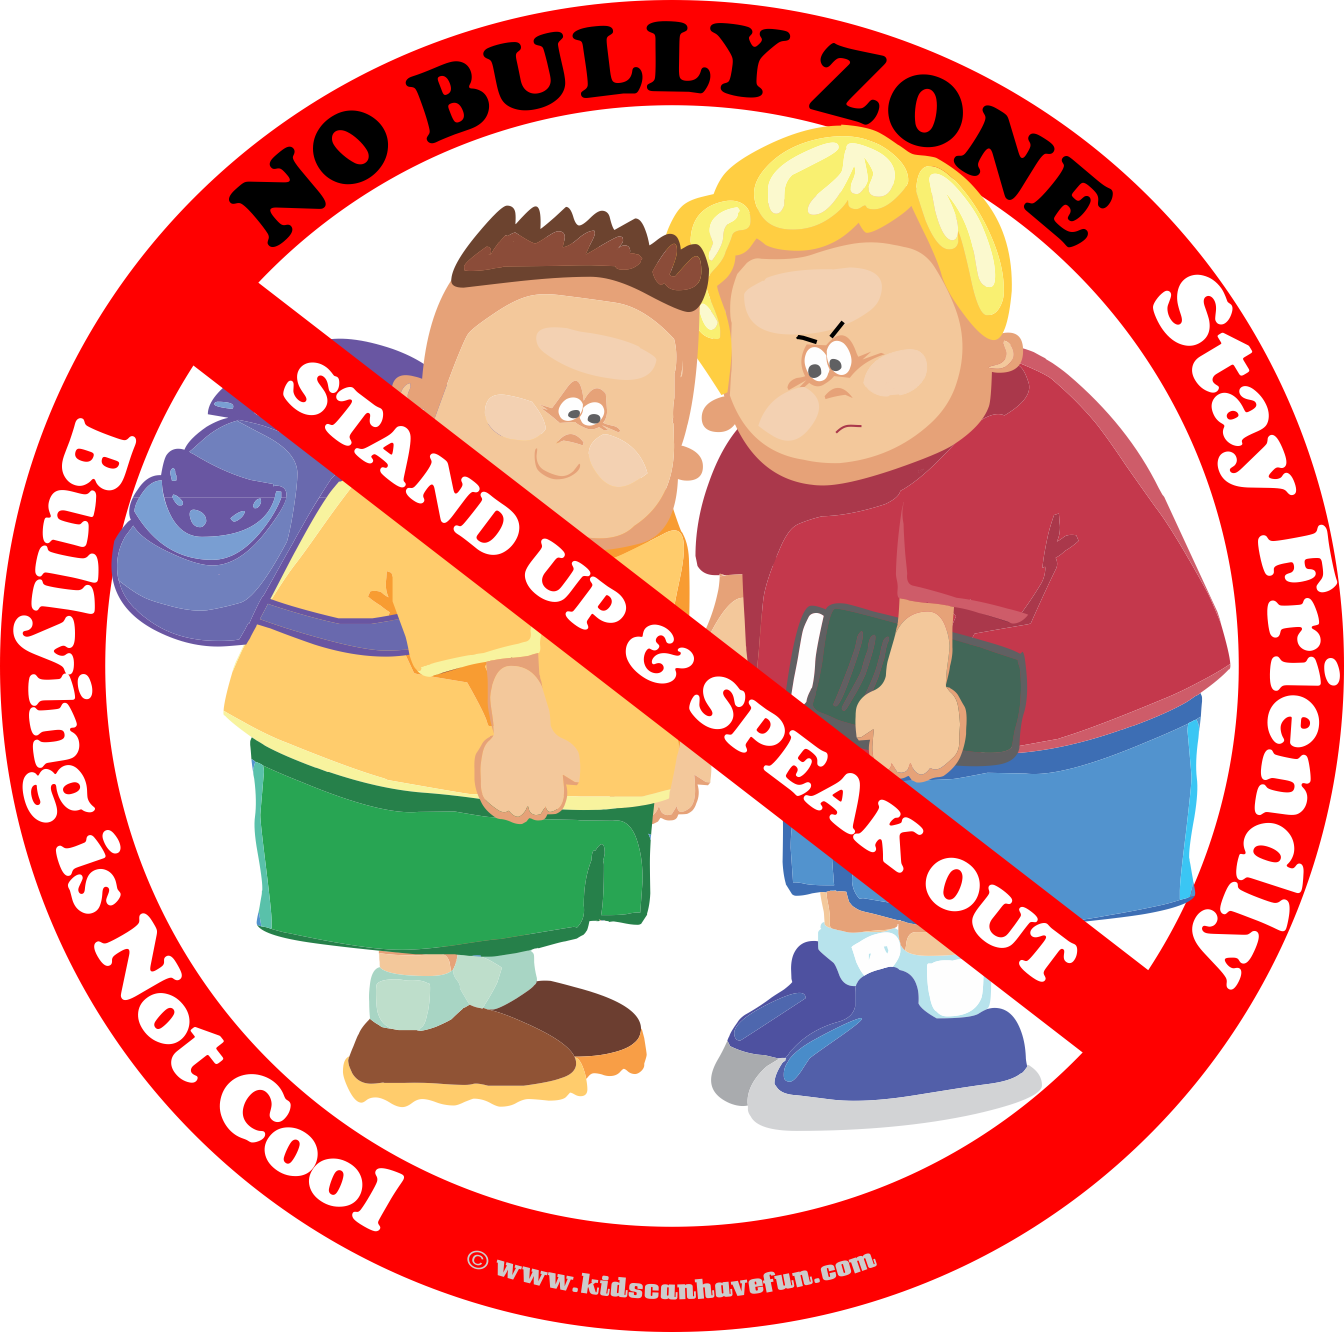 No Bully Zone Poster to hang up at school, home or daycare ...